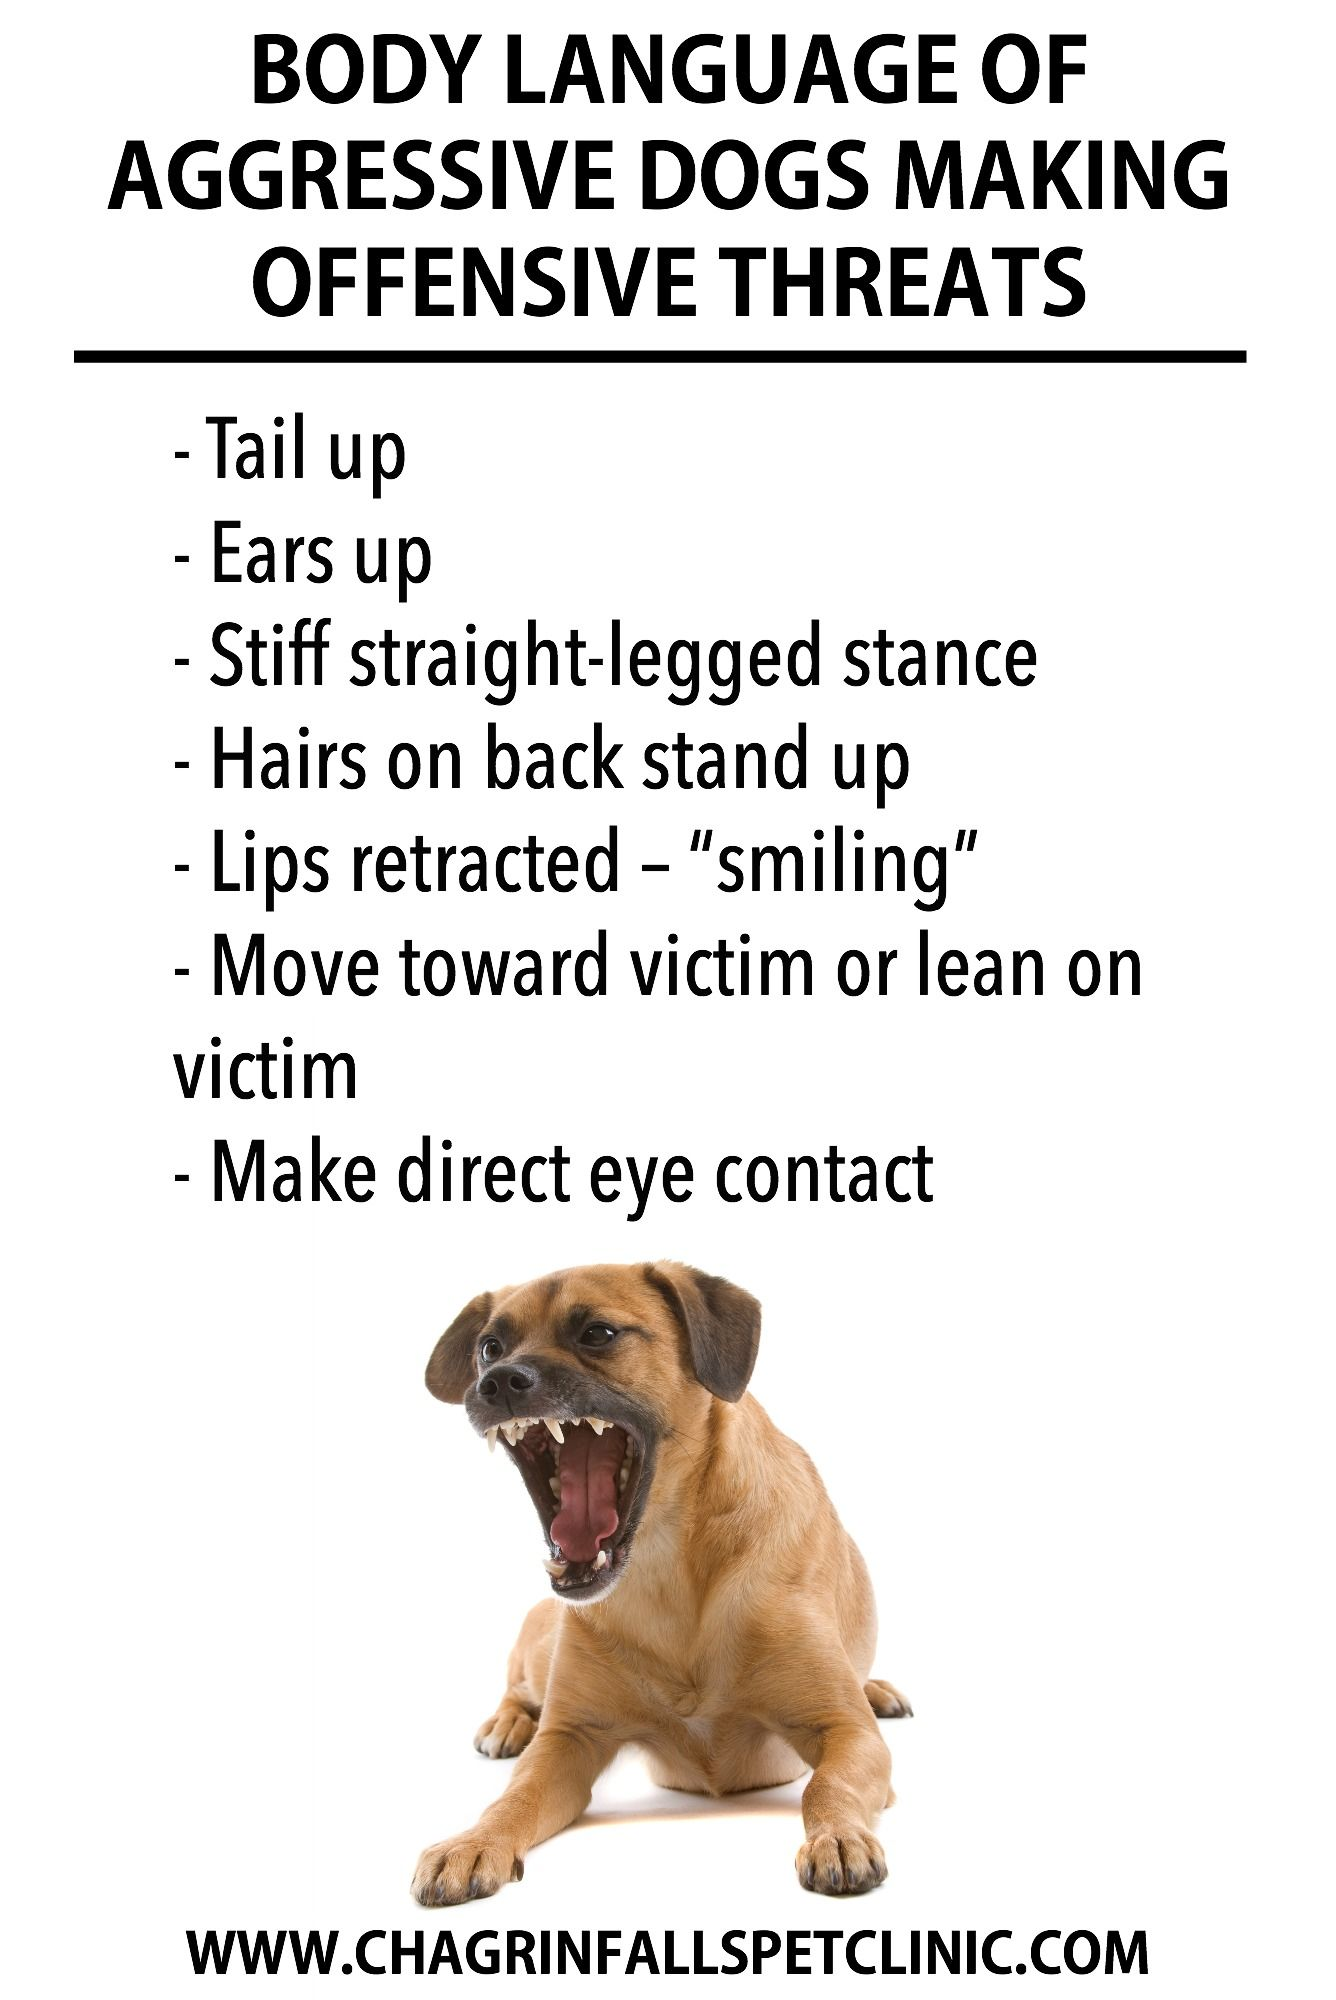 Learn To Recognize The Early Warning Signs Of Aggression By